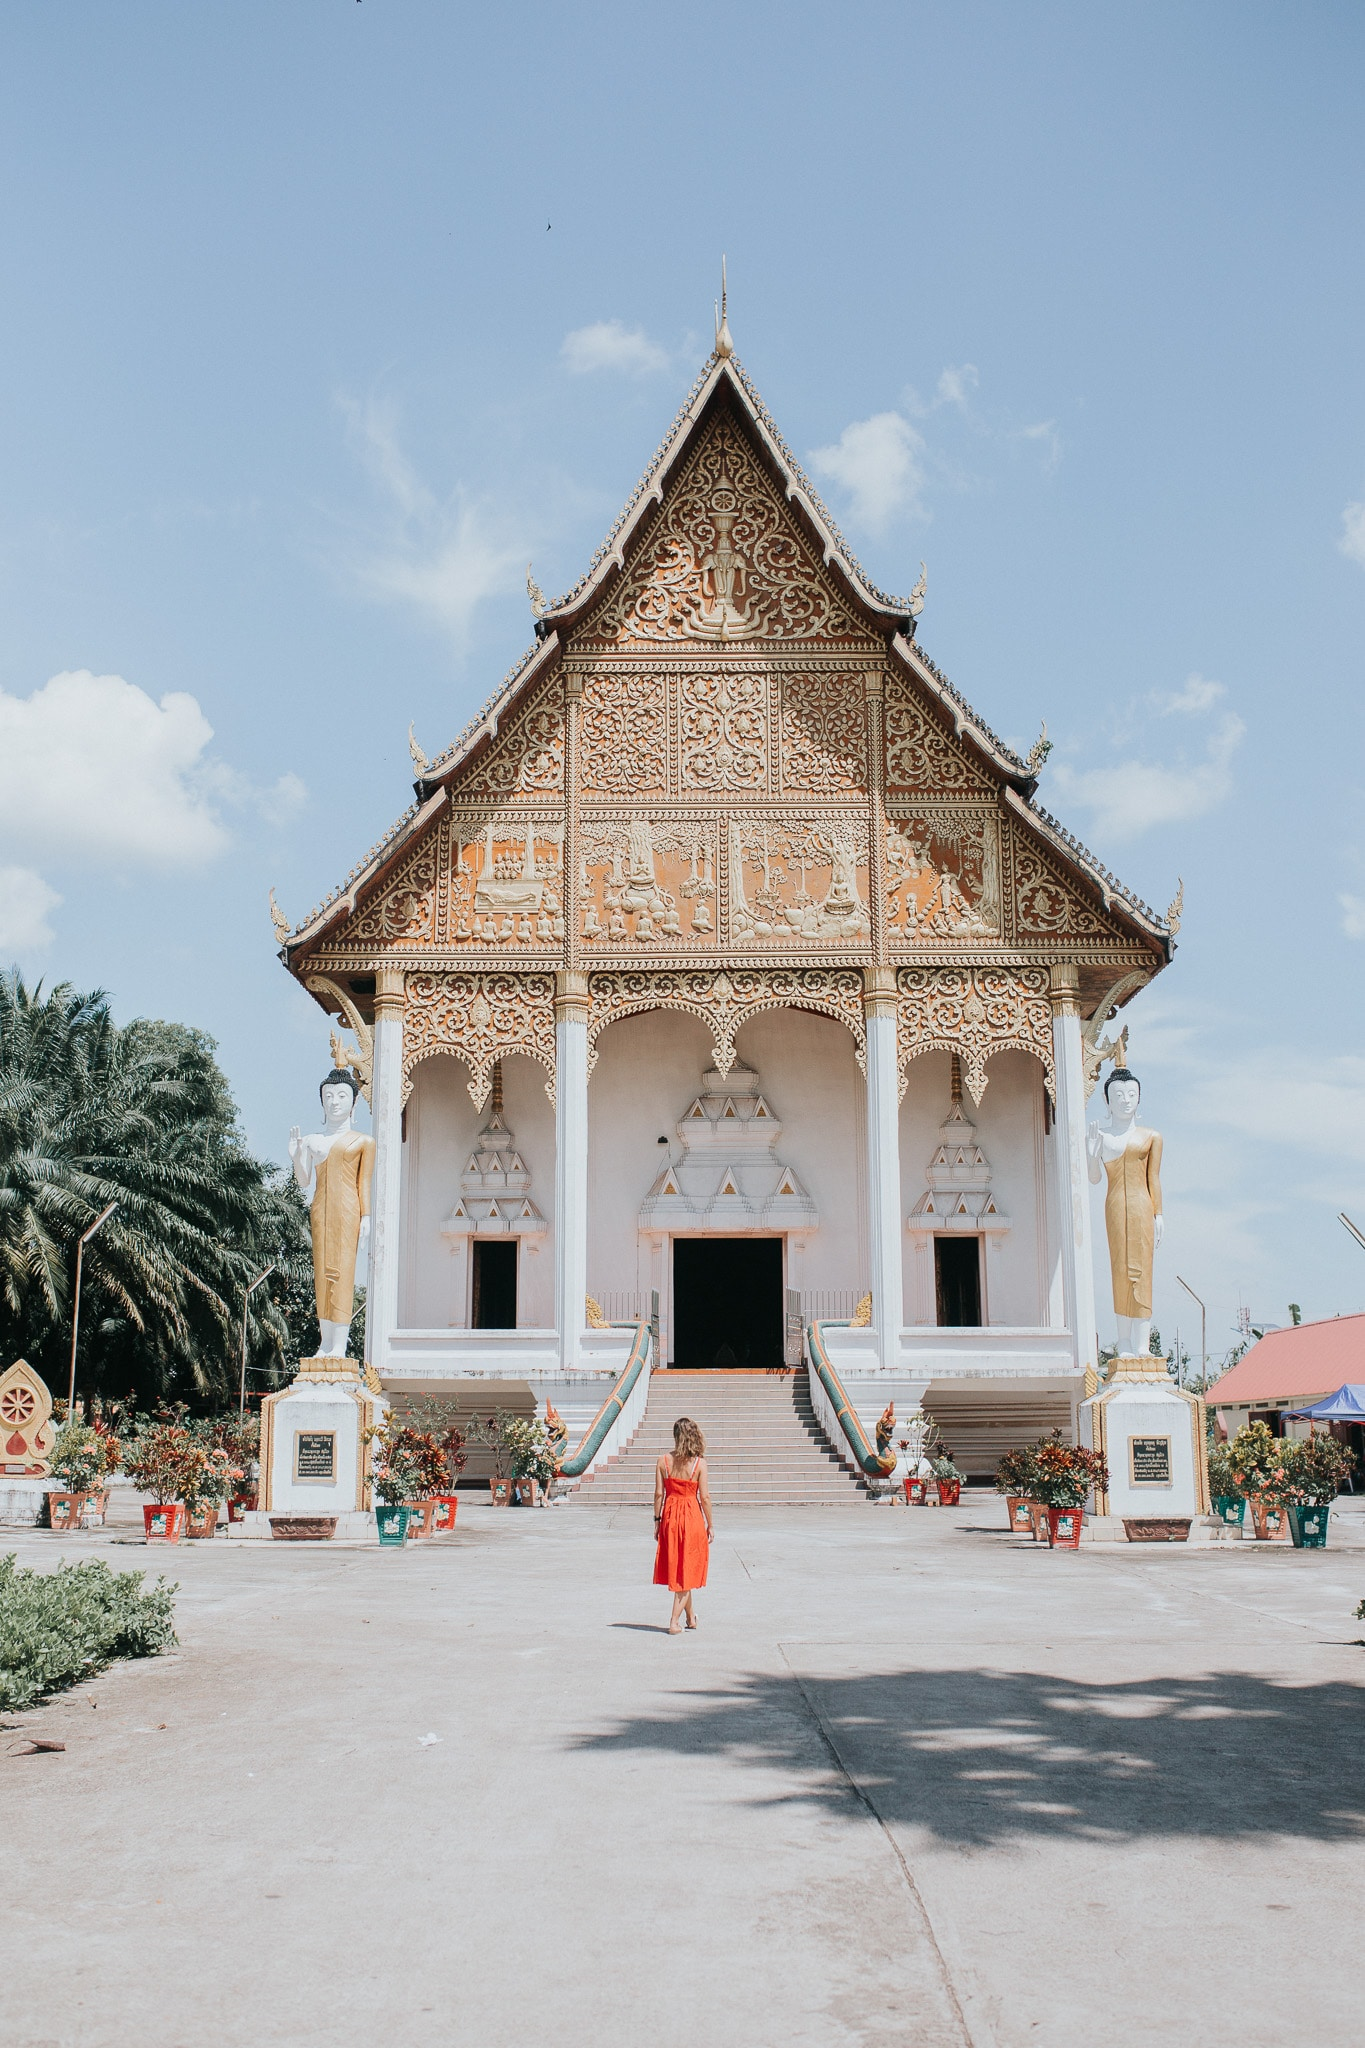 One week in Laos – Vientiane – Buddhist temple